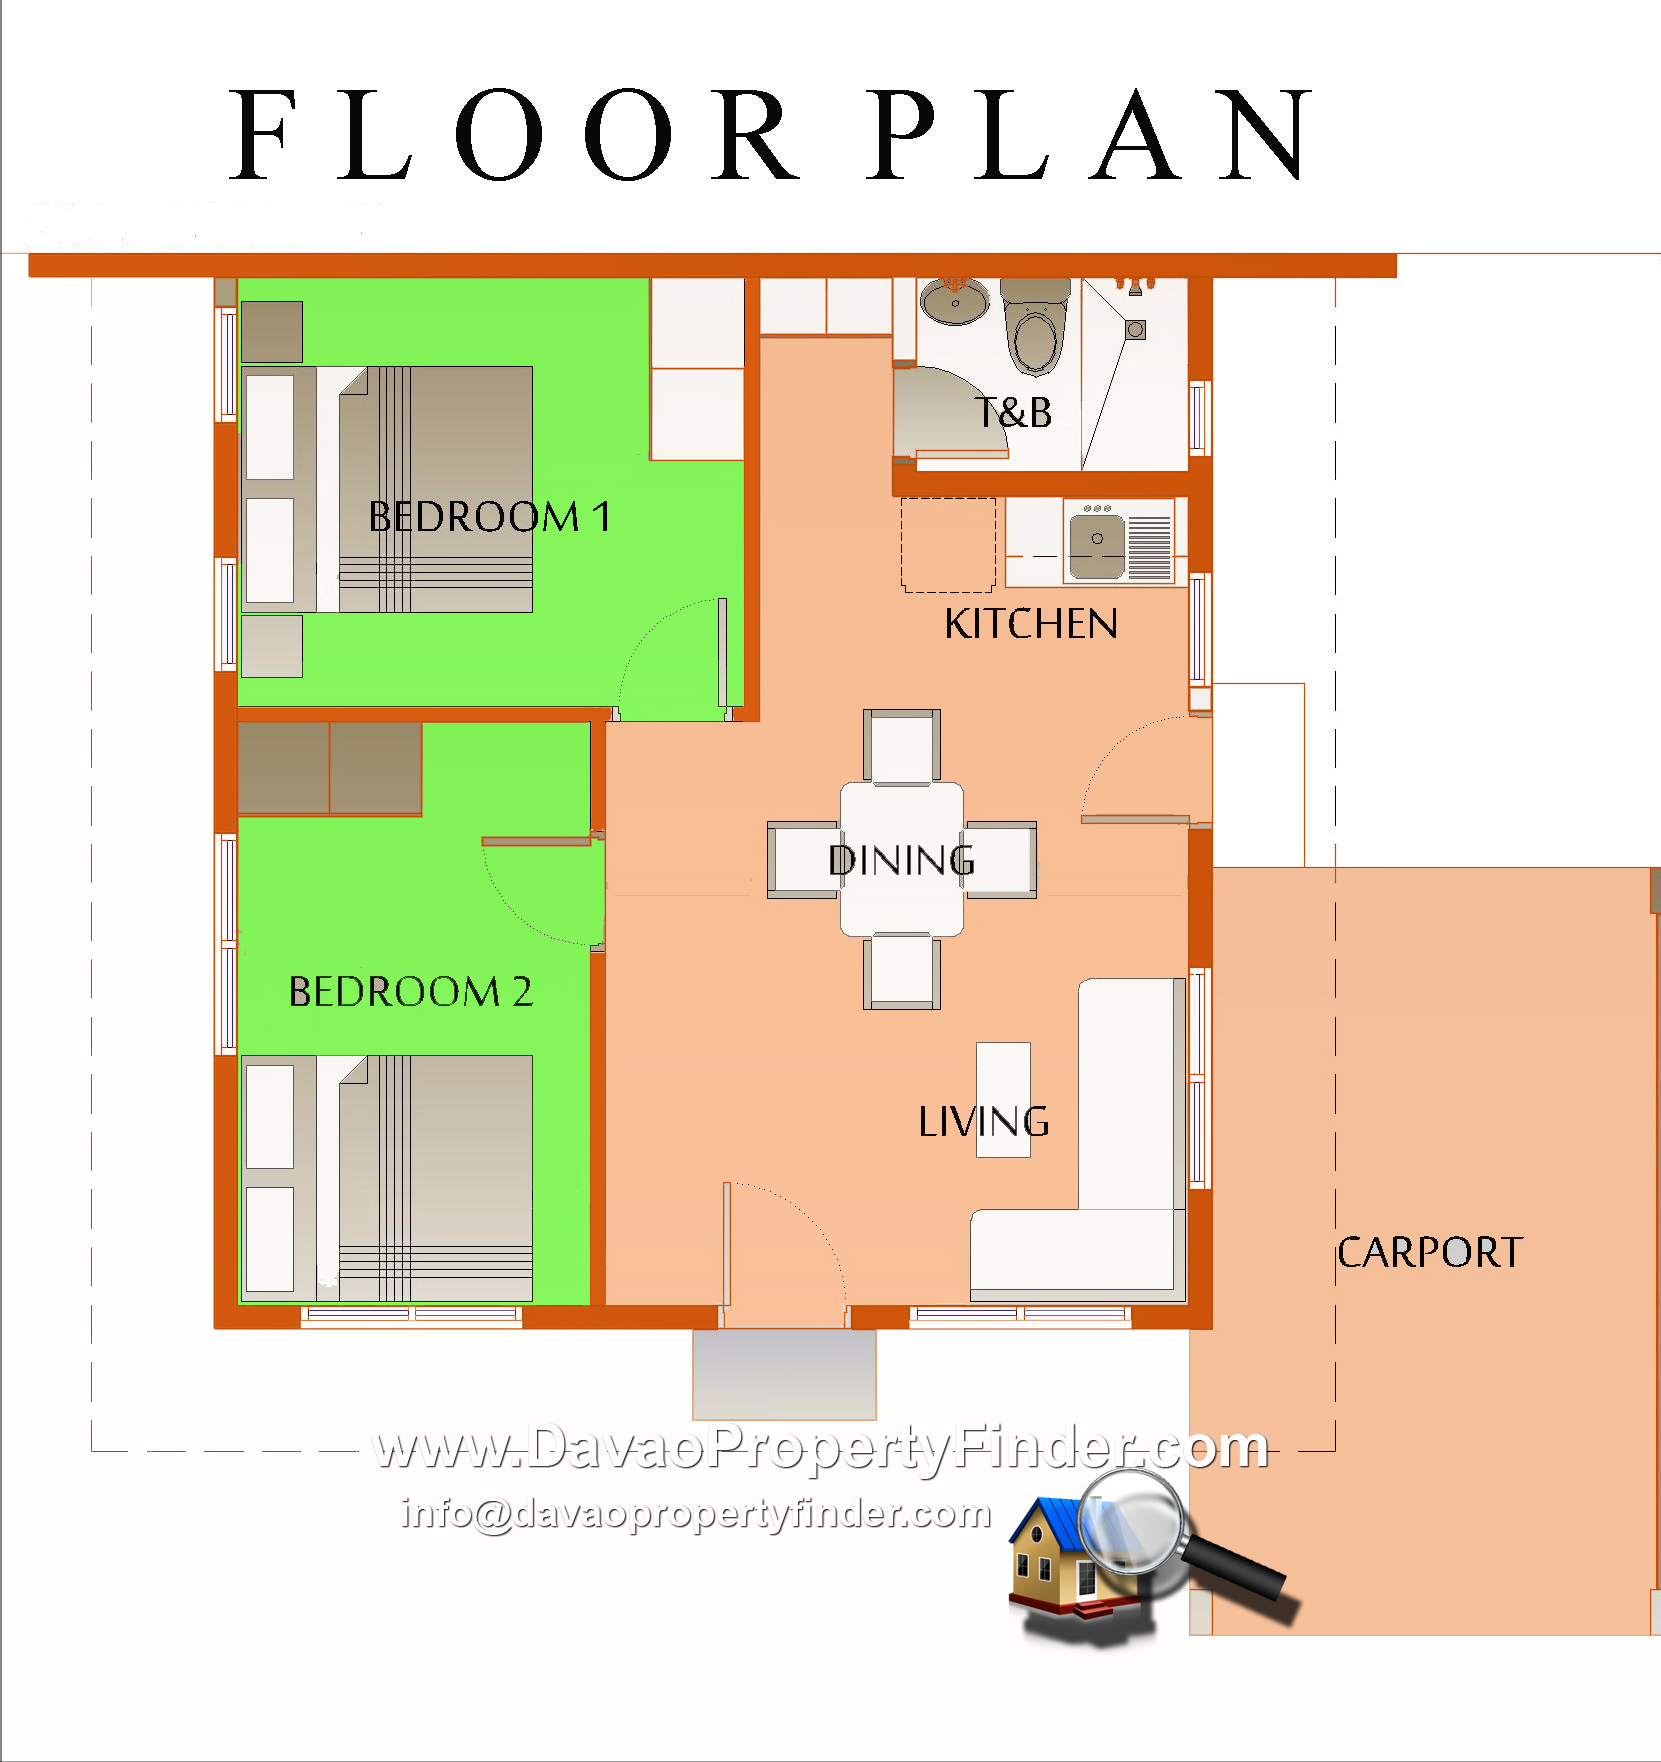 Simeona house in elenita heights park villas catalunan for Floor plan finder